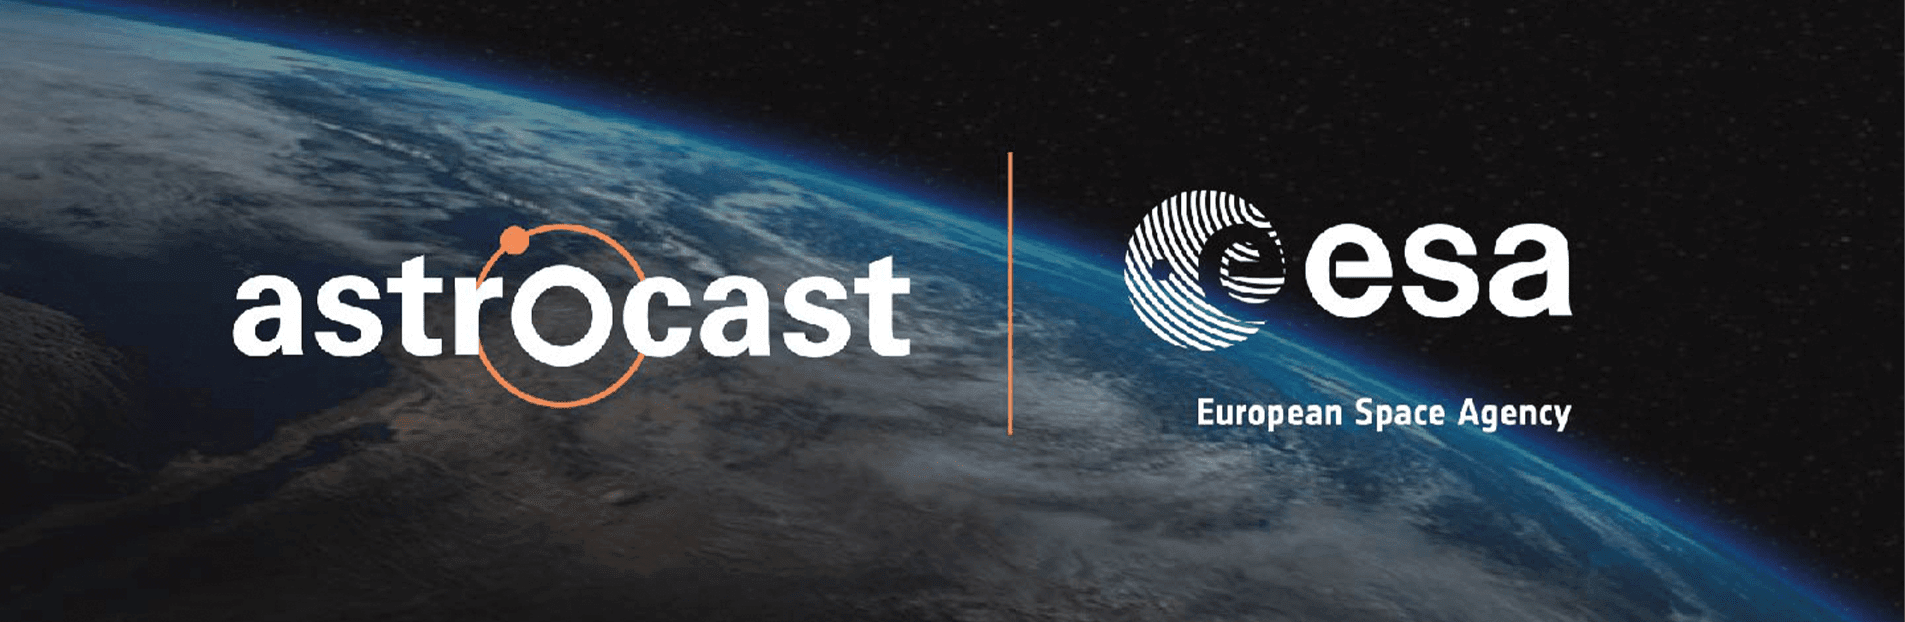 astrocast_european_space_agency_important_review